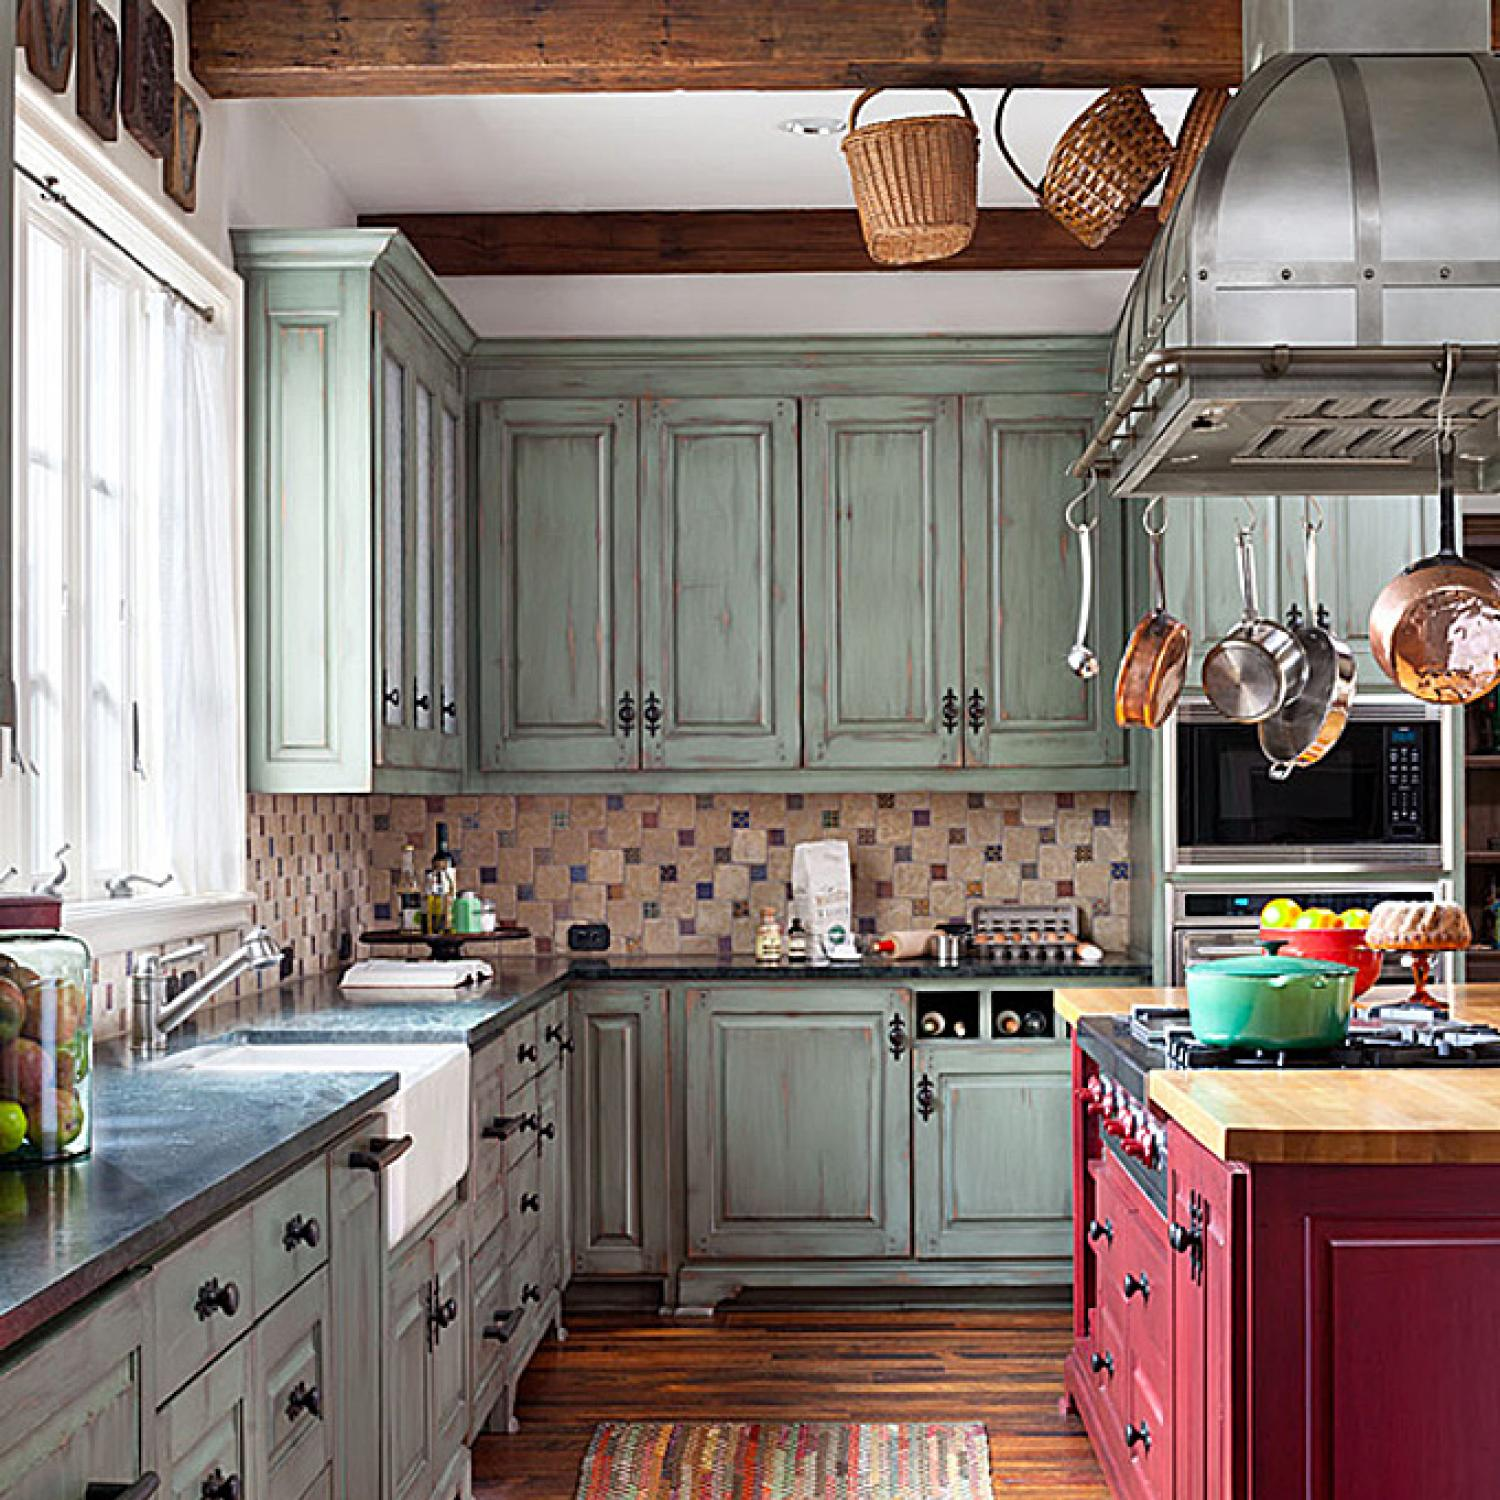 Cool Calm And Functional Kitchen: Pretty, Functional Kitchen For A Foodie